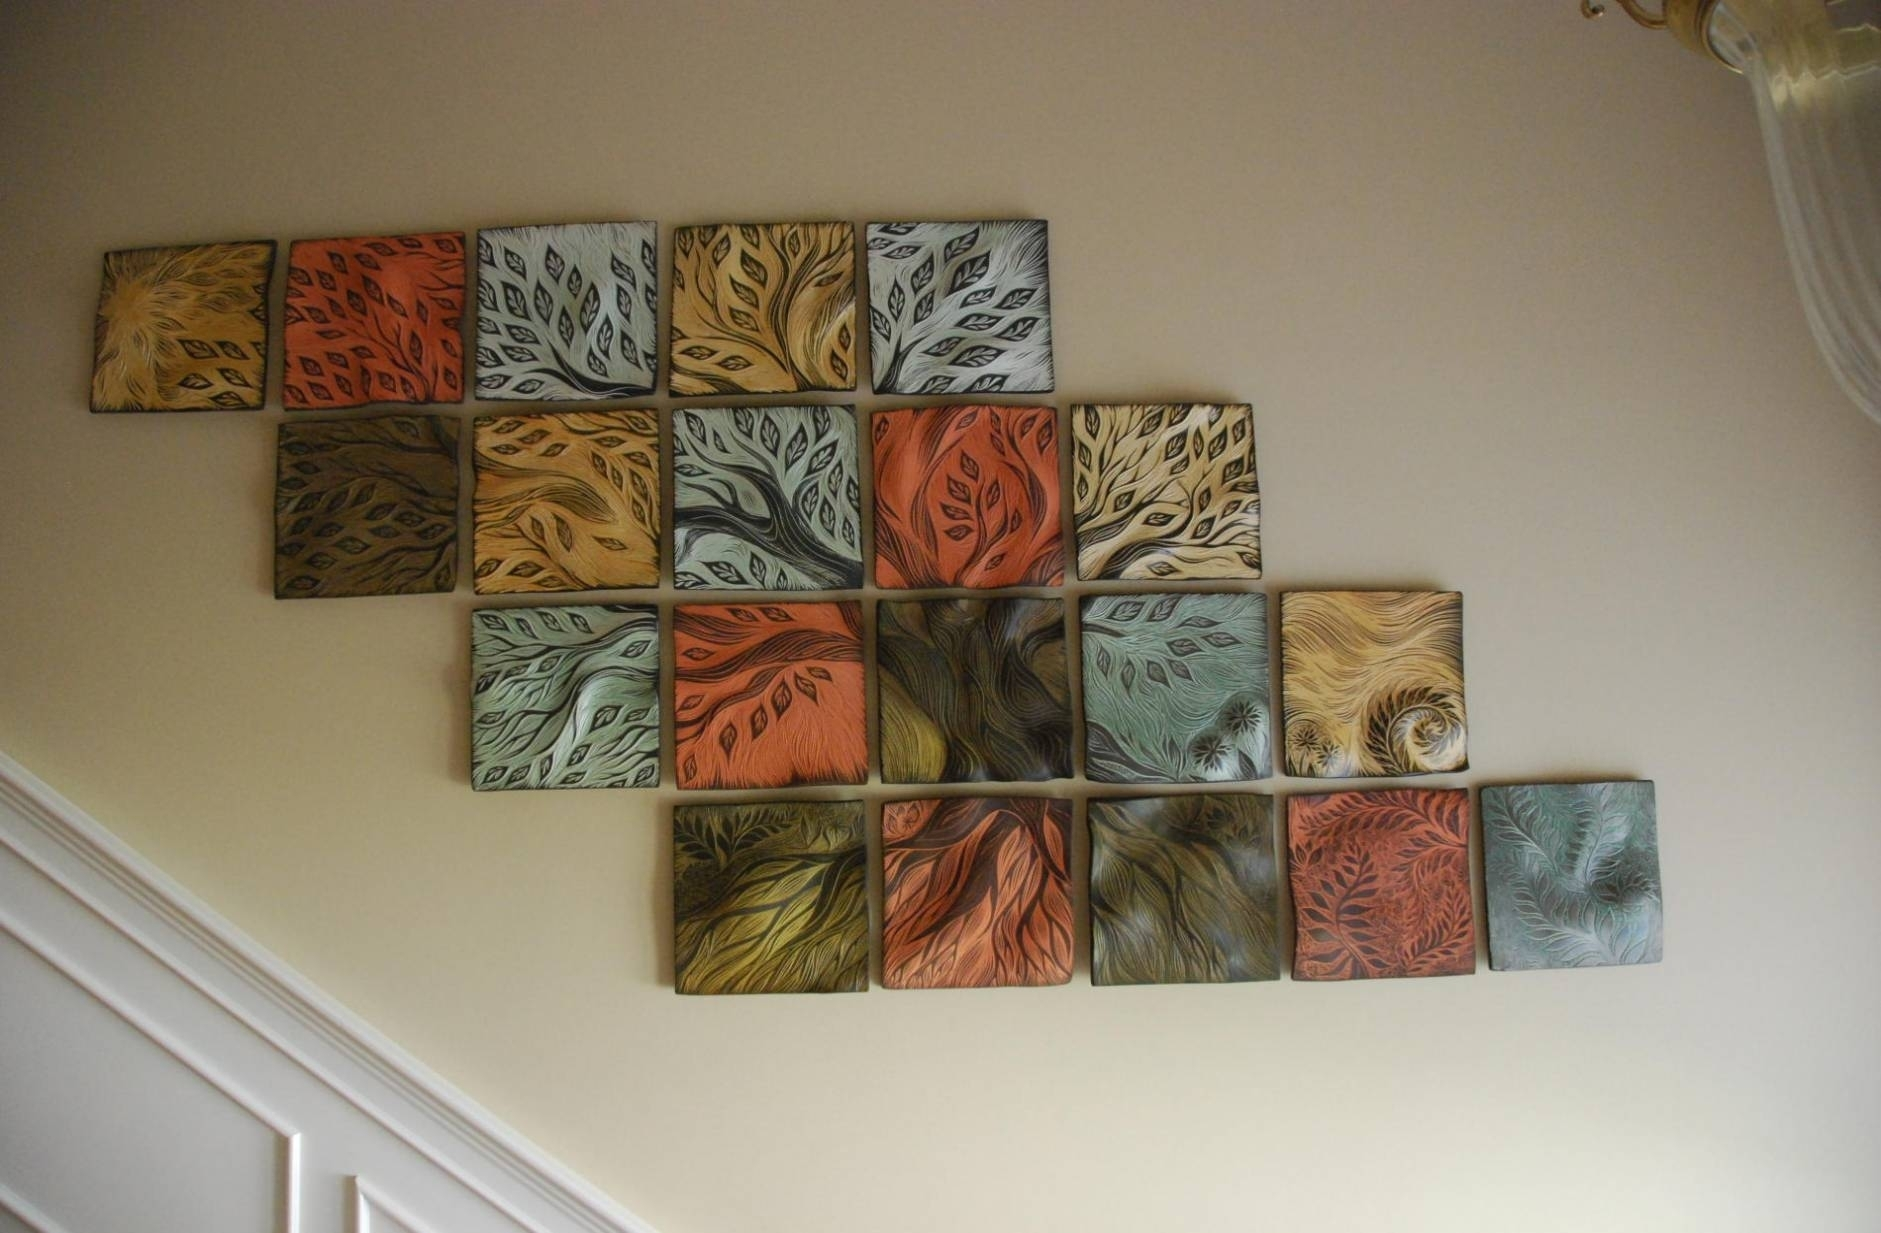 18 Best Collection Of Ceramic Wall Art With Regard To Recent Abstract Ceramic Wall Art (View 1 of 20)